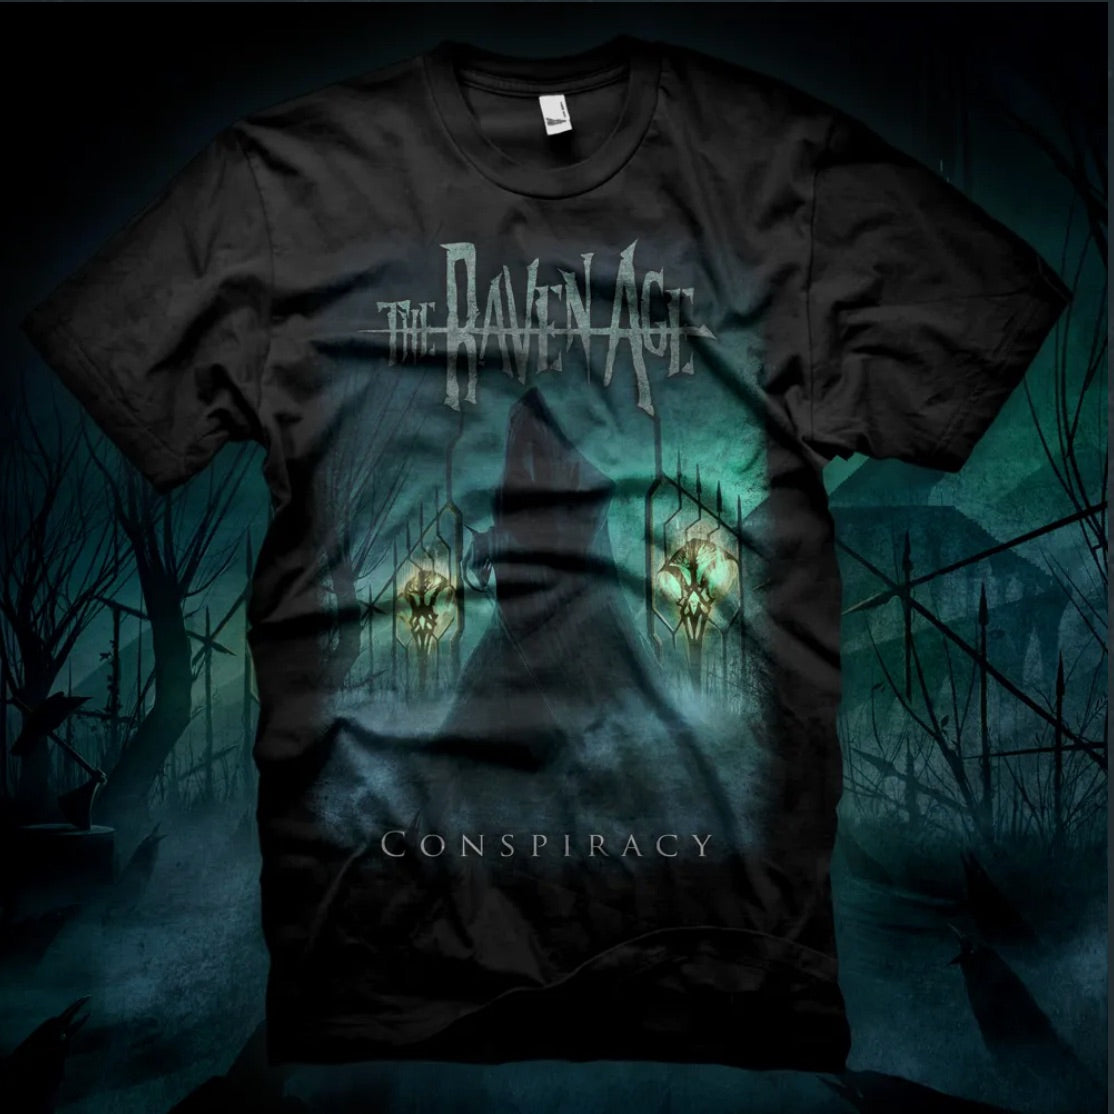 The Raven Age  Conspiracy T-Shirt